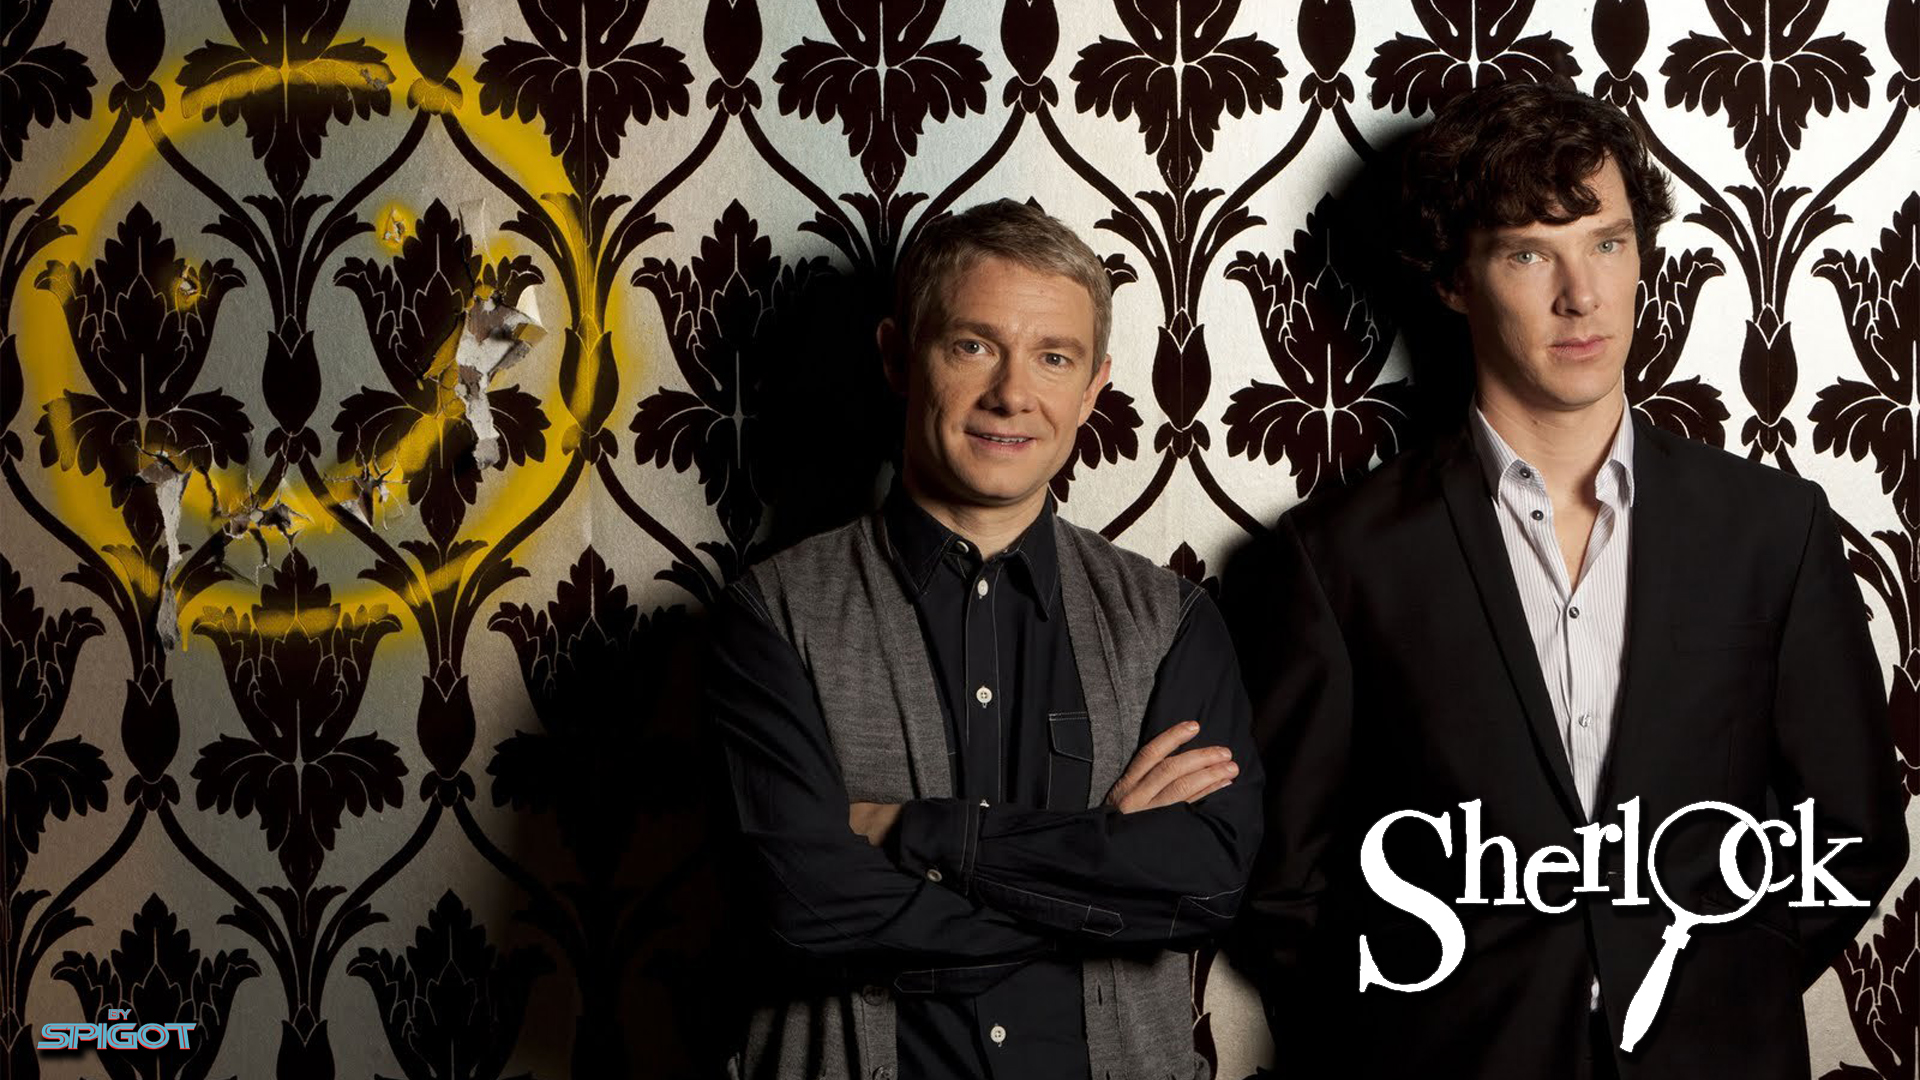 Sherlock Smiley Wallpaper fabric - mellymellow - Spoonflower